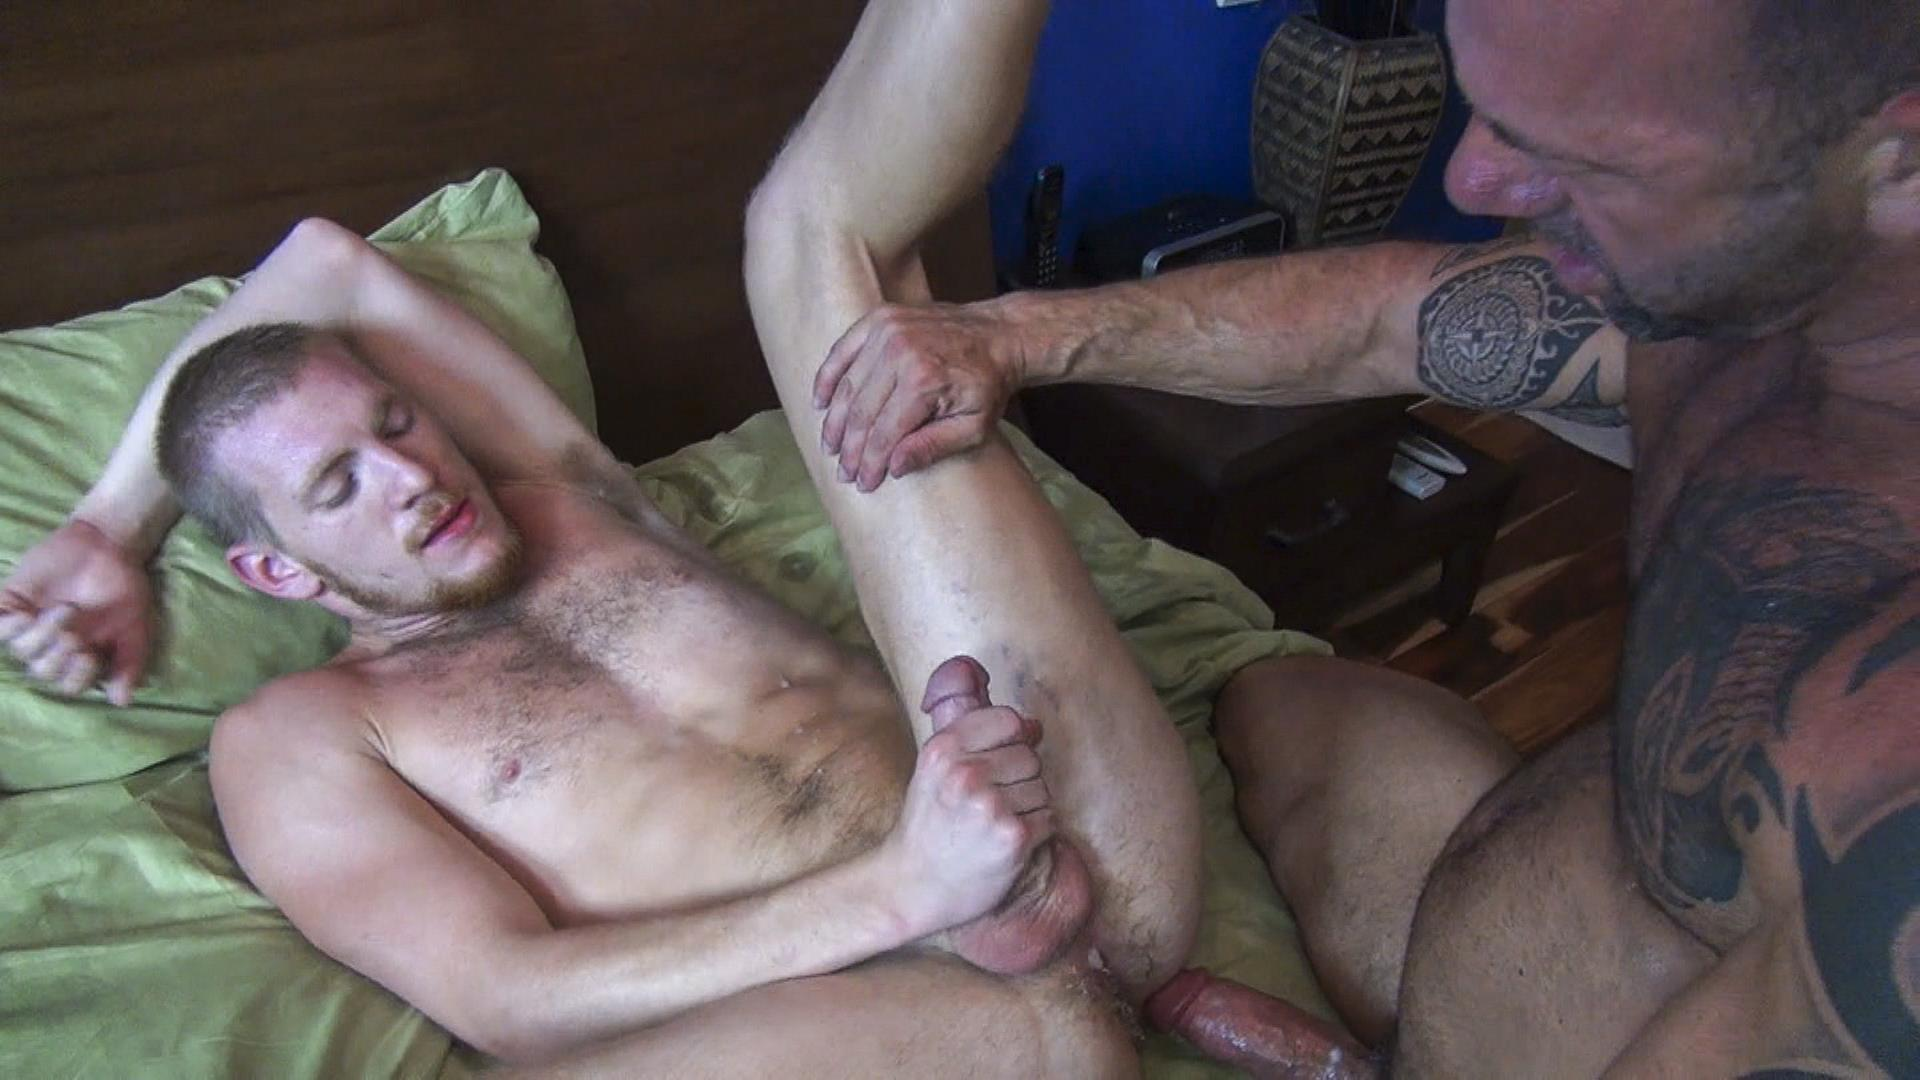 Raw-Fuck-Club-Vic-Rocco-and-Rikk-York-and-Billy-Warren-and-Job-Galt-Bareback-Daddy-Amateur-Gay-Porn-01 Four Hairy Muscle Daddies In A Bareback Fuck Fest Orgy